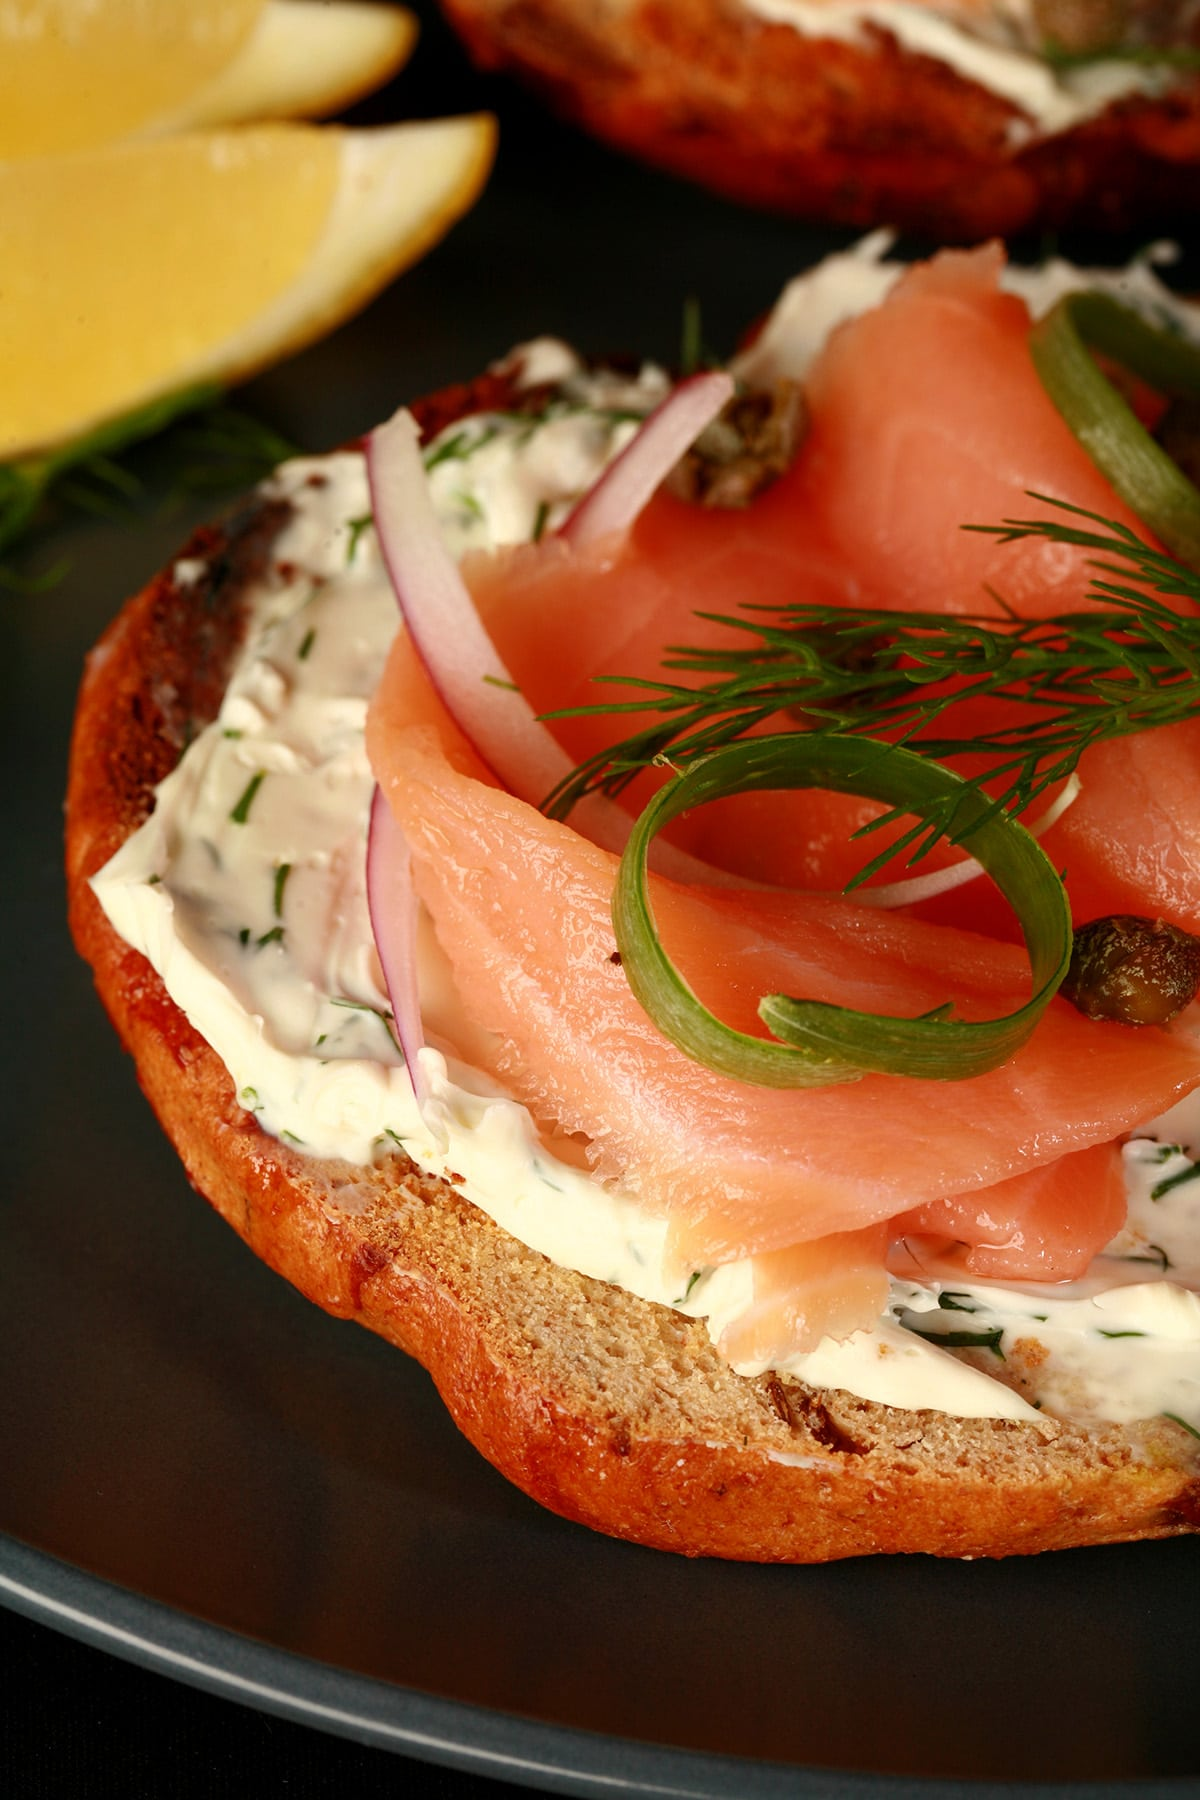 A toasted bagel open face sandwich with smoked salmon, cream cheese, capers, and onions.